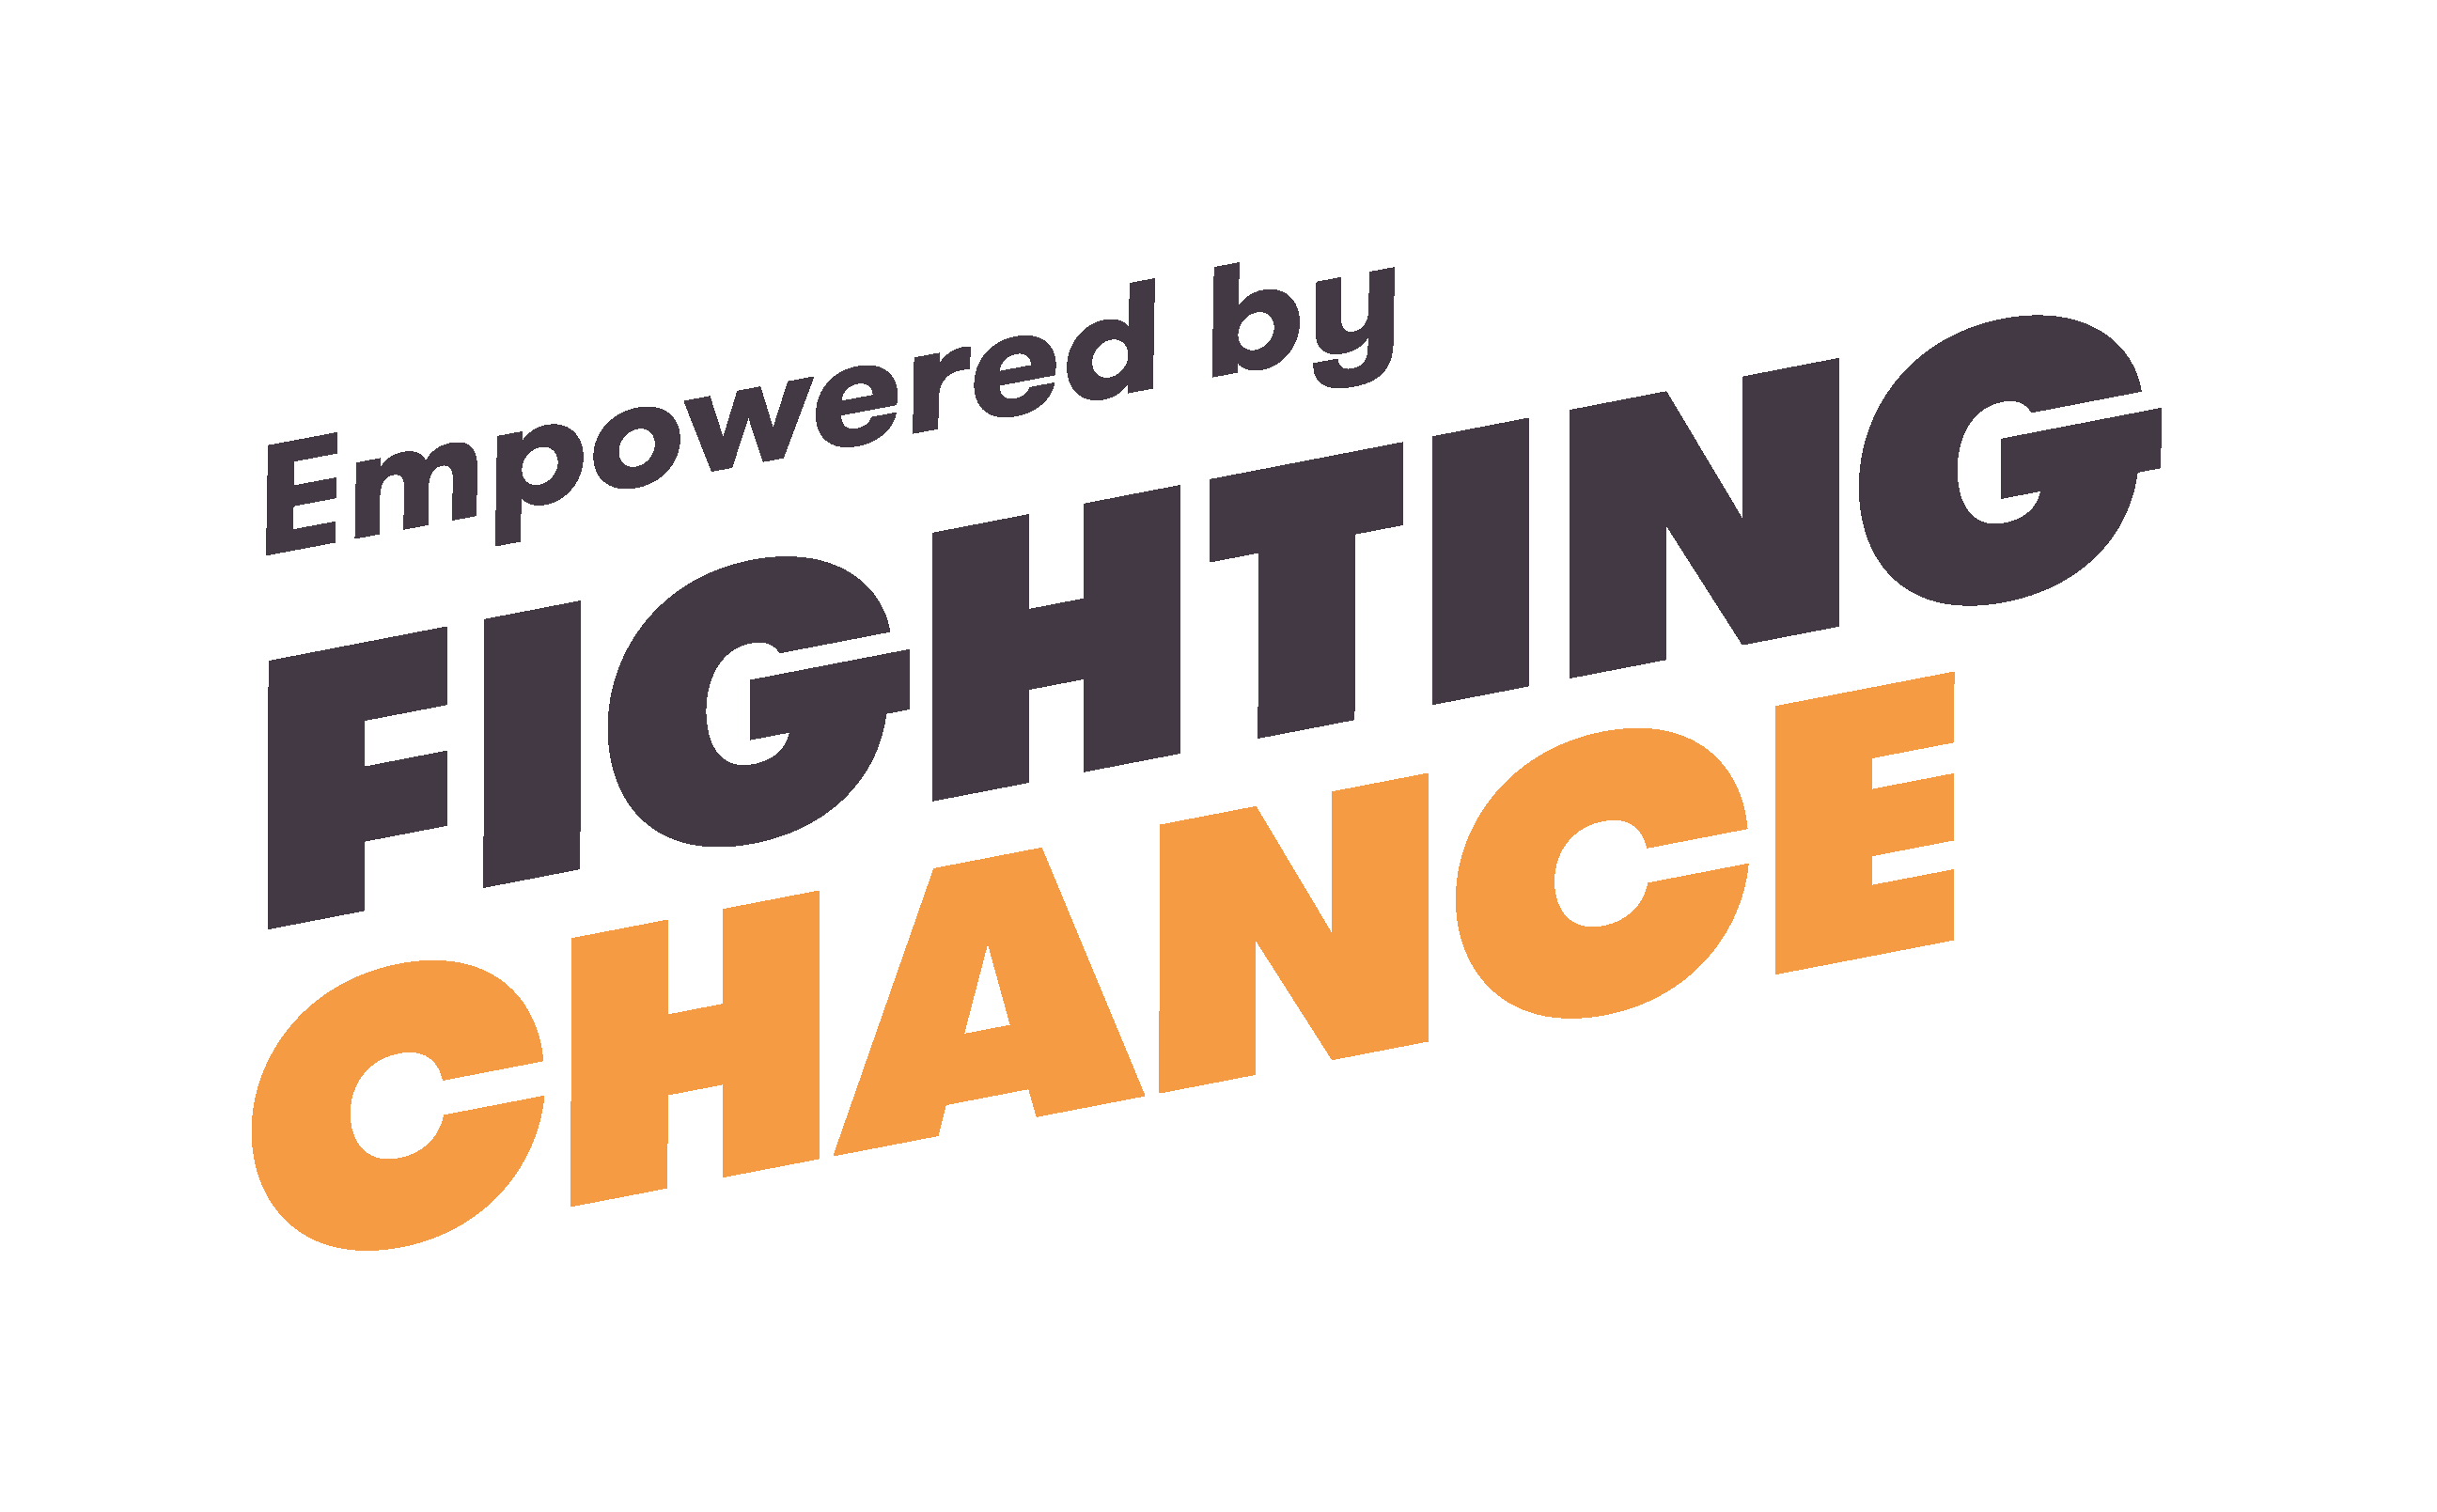 Black and orange text reads Empowered by Fighting Chance